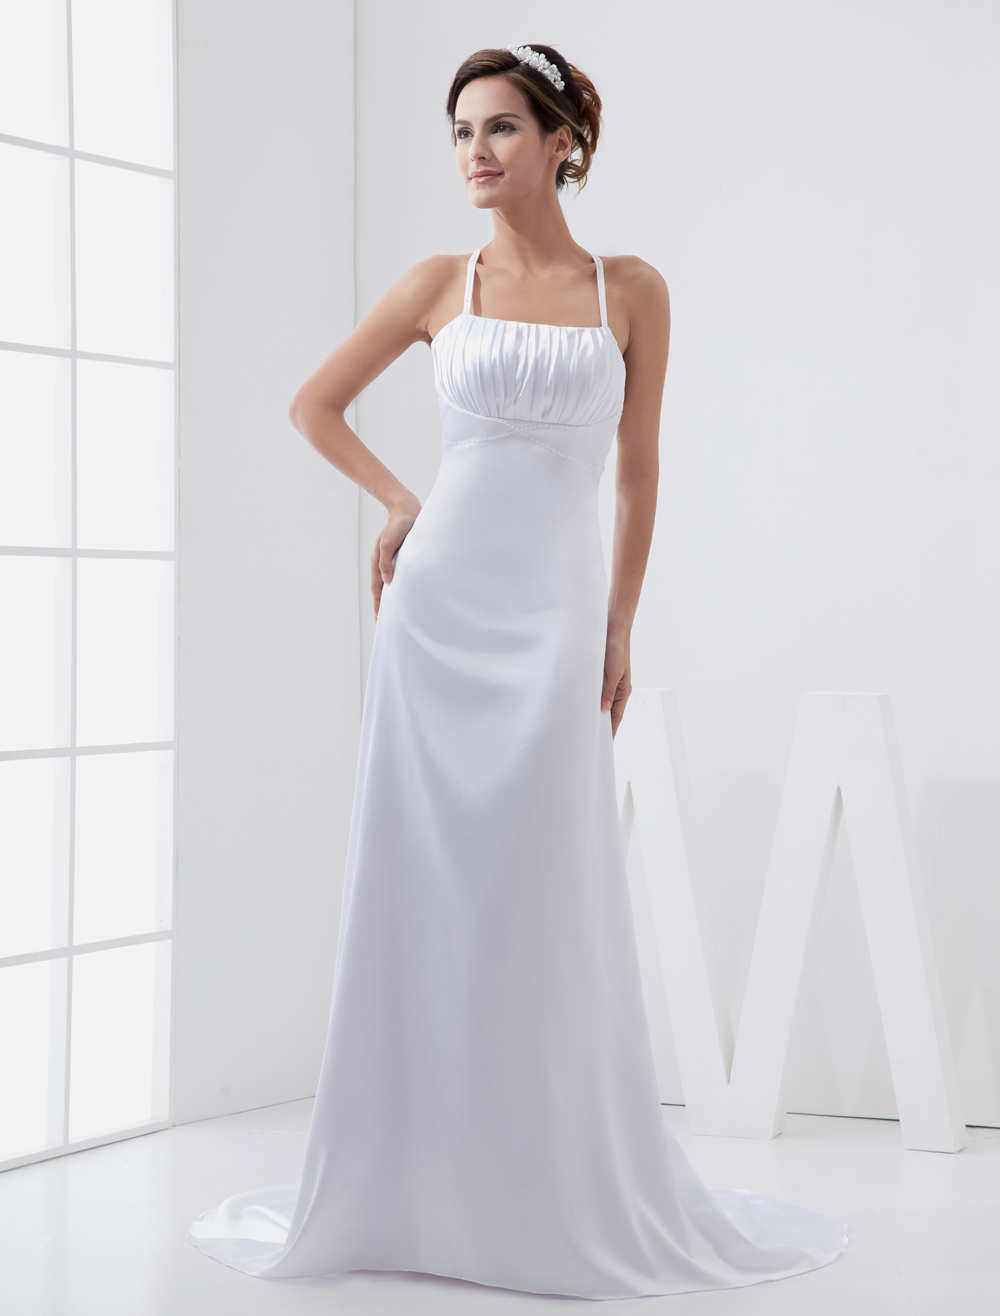 Sweep White Ruched Bridal Wedding Gown with Spaghetti Straps A-line